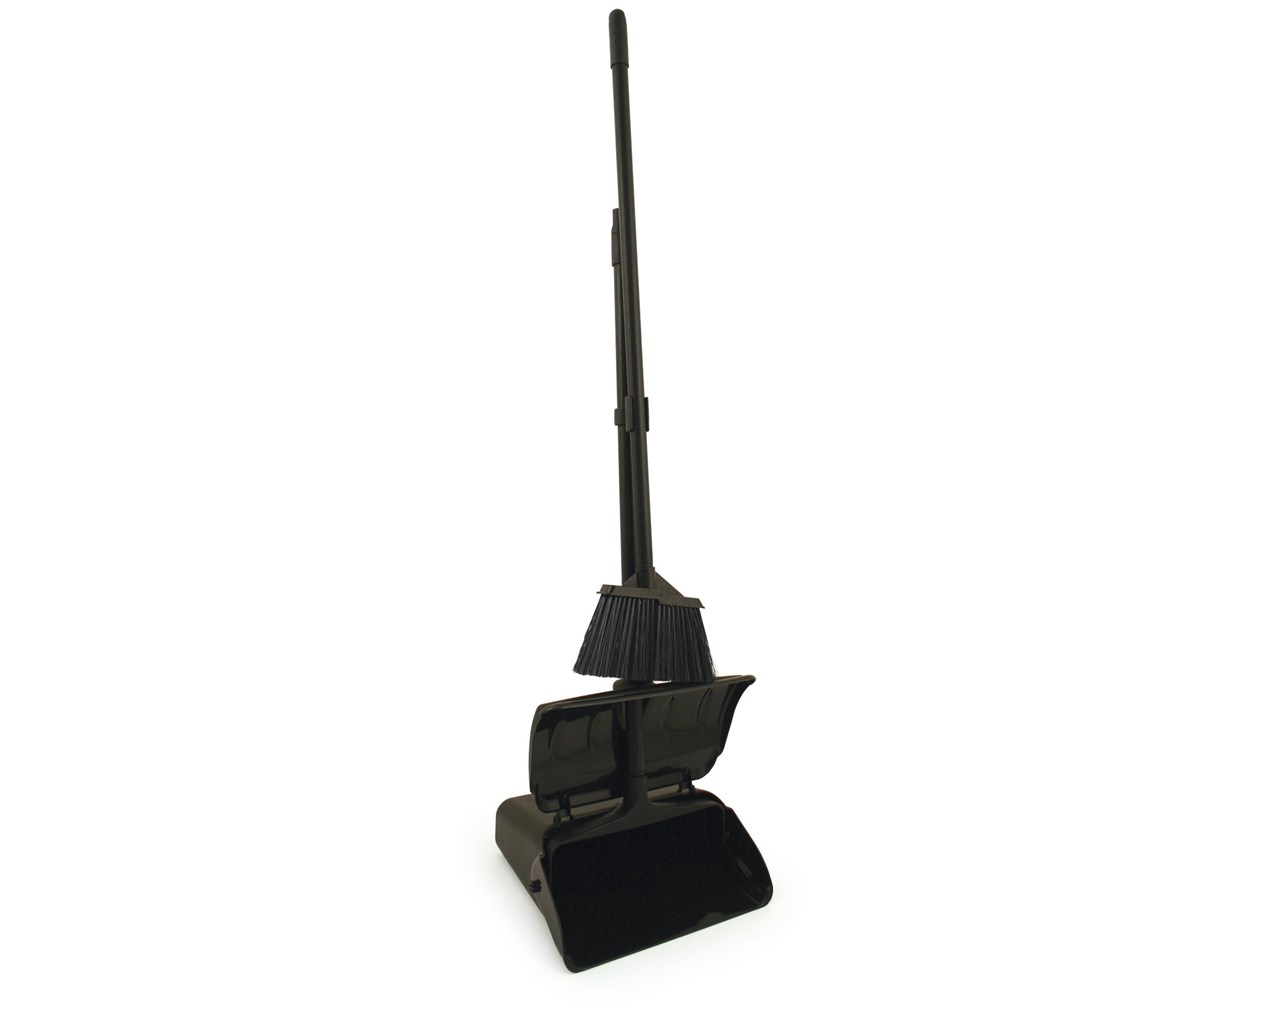 Heavy Duty Lobby Dustpan And Broom Set Vz Hdlpb Set